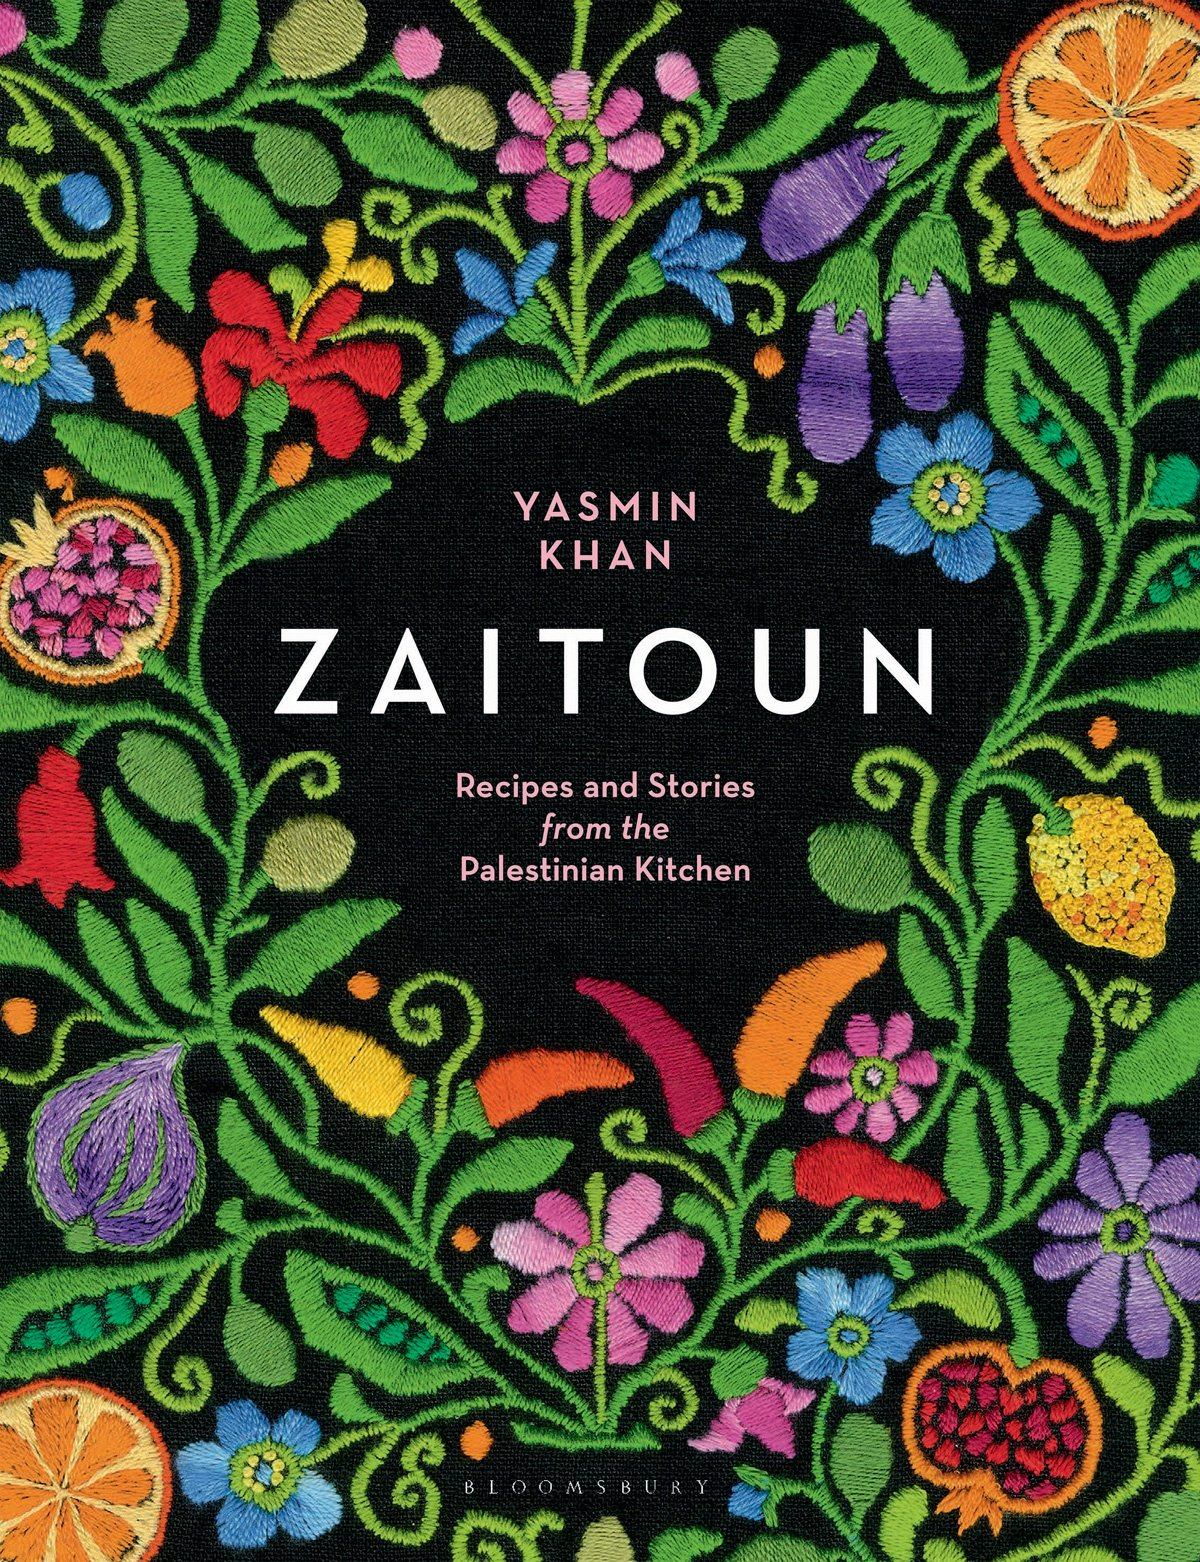 Stories and Recipes from the Palestinian Kitchen